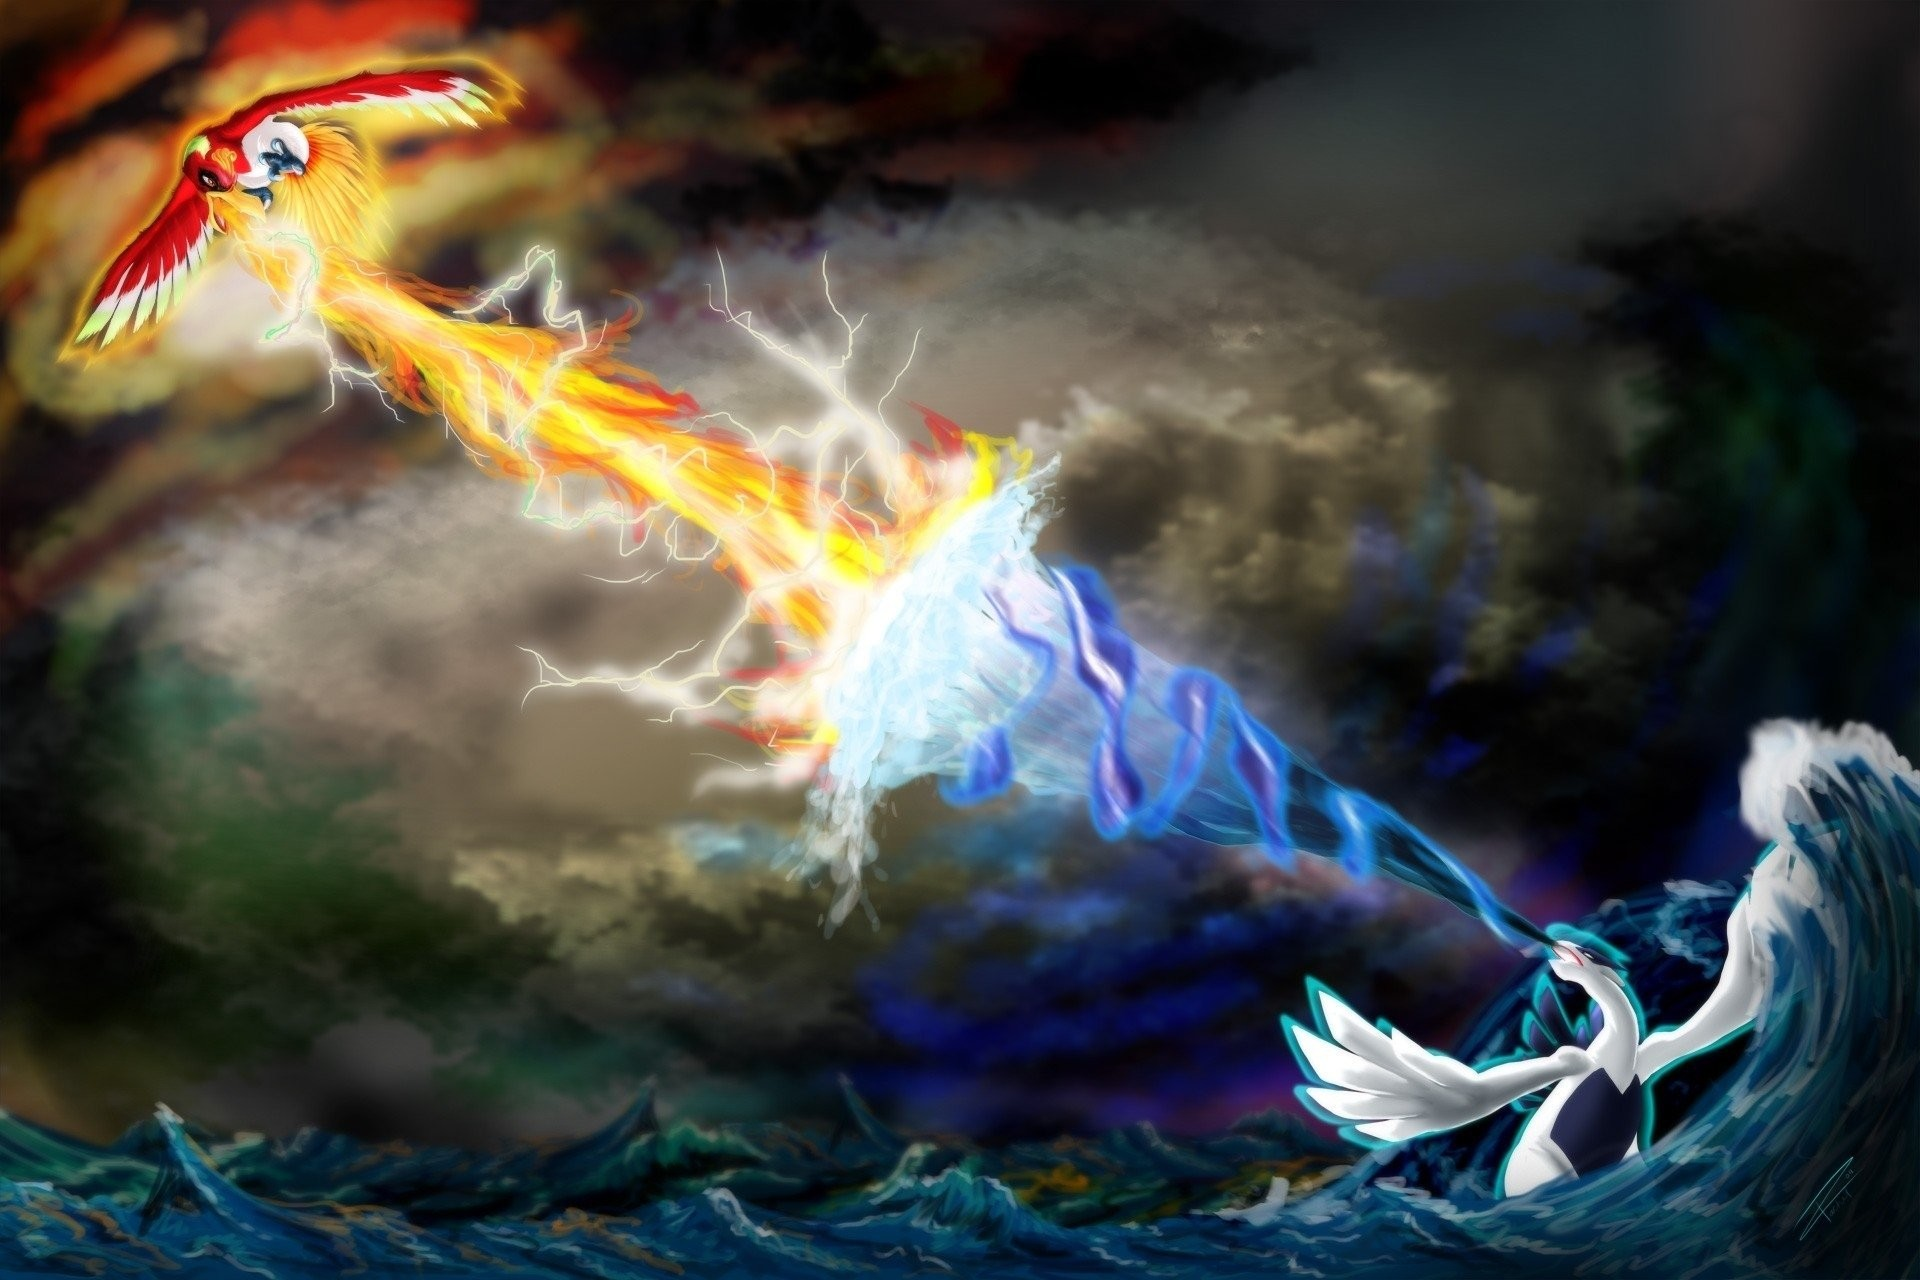 Res: 1920x1280, Computerspiele - Pokémon Lugia (Pokémon) Ho-oh (Pokémon) Wallpaper